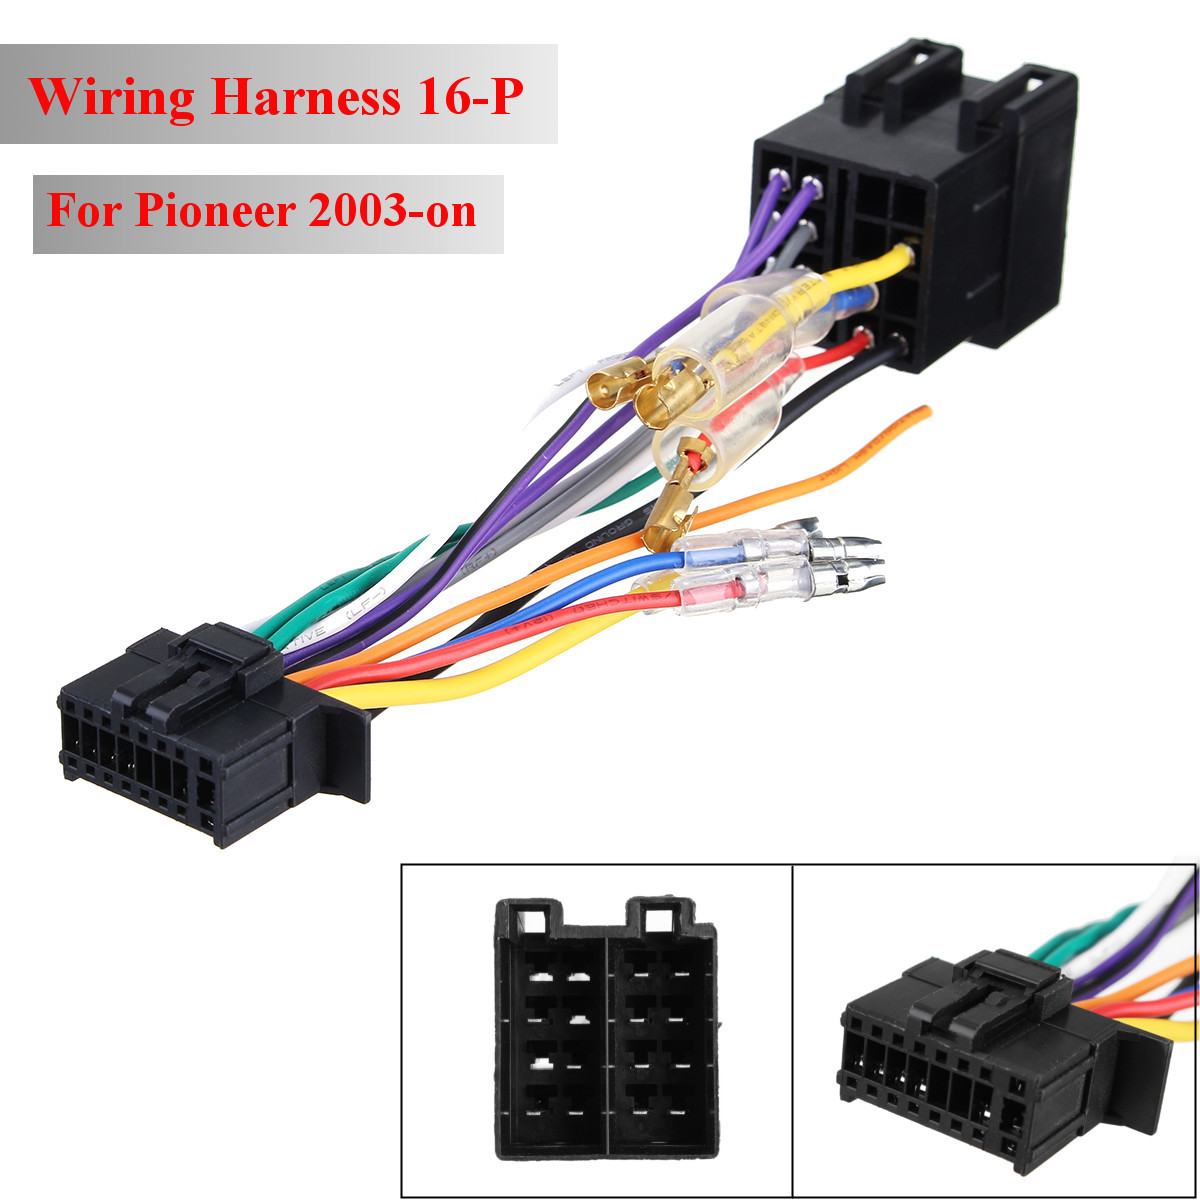 hight resolution of 16pin car stereo radio wiring harness connector plug iso pi100 for pioneer 03 on